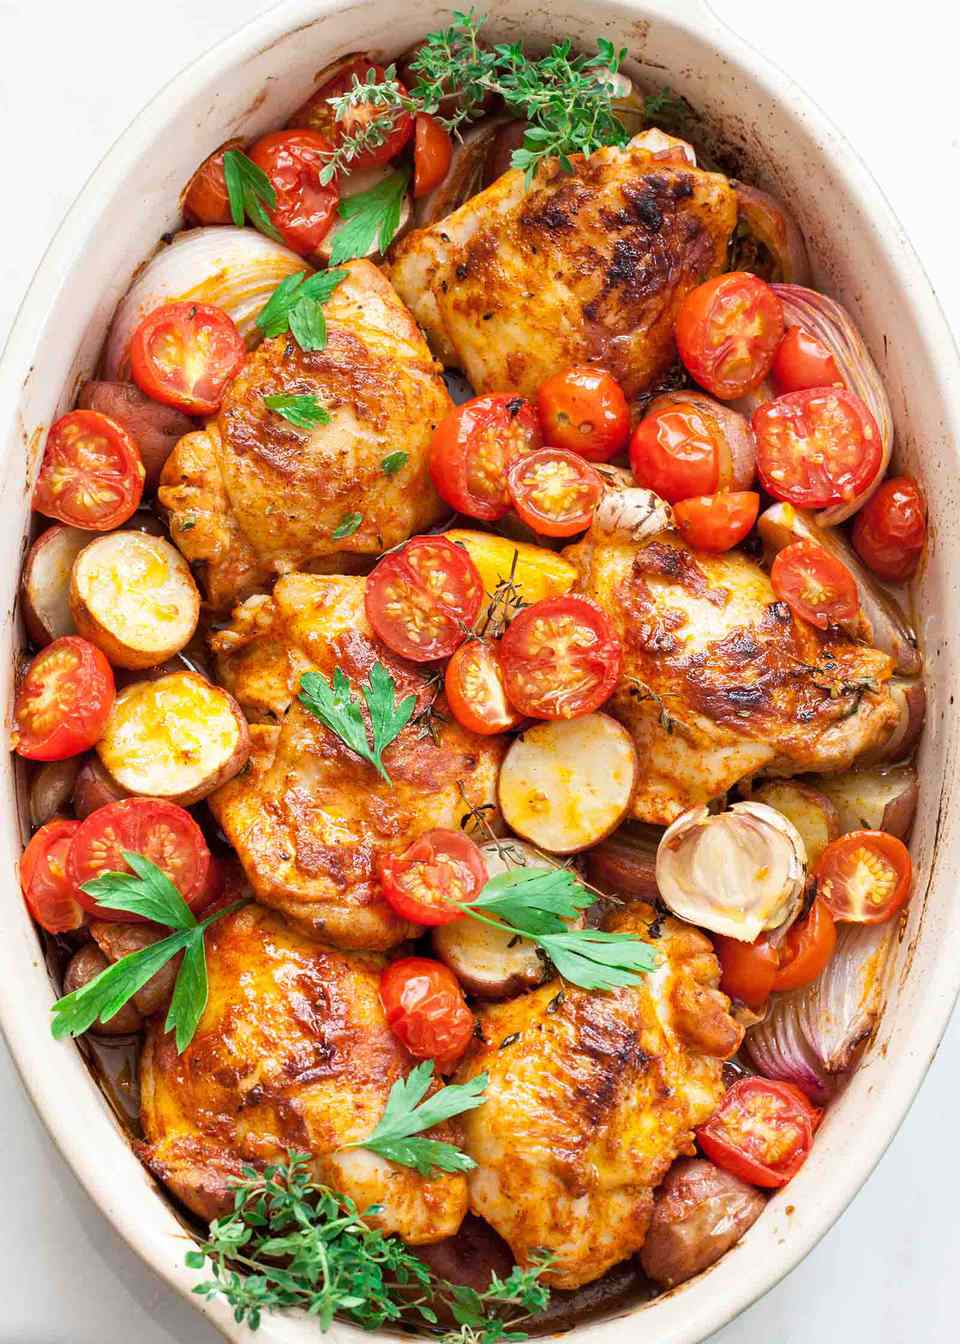 Paprika Chicken and Potatoes with Tomatoes in an oval baking dish